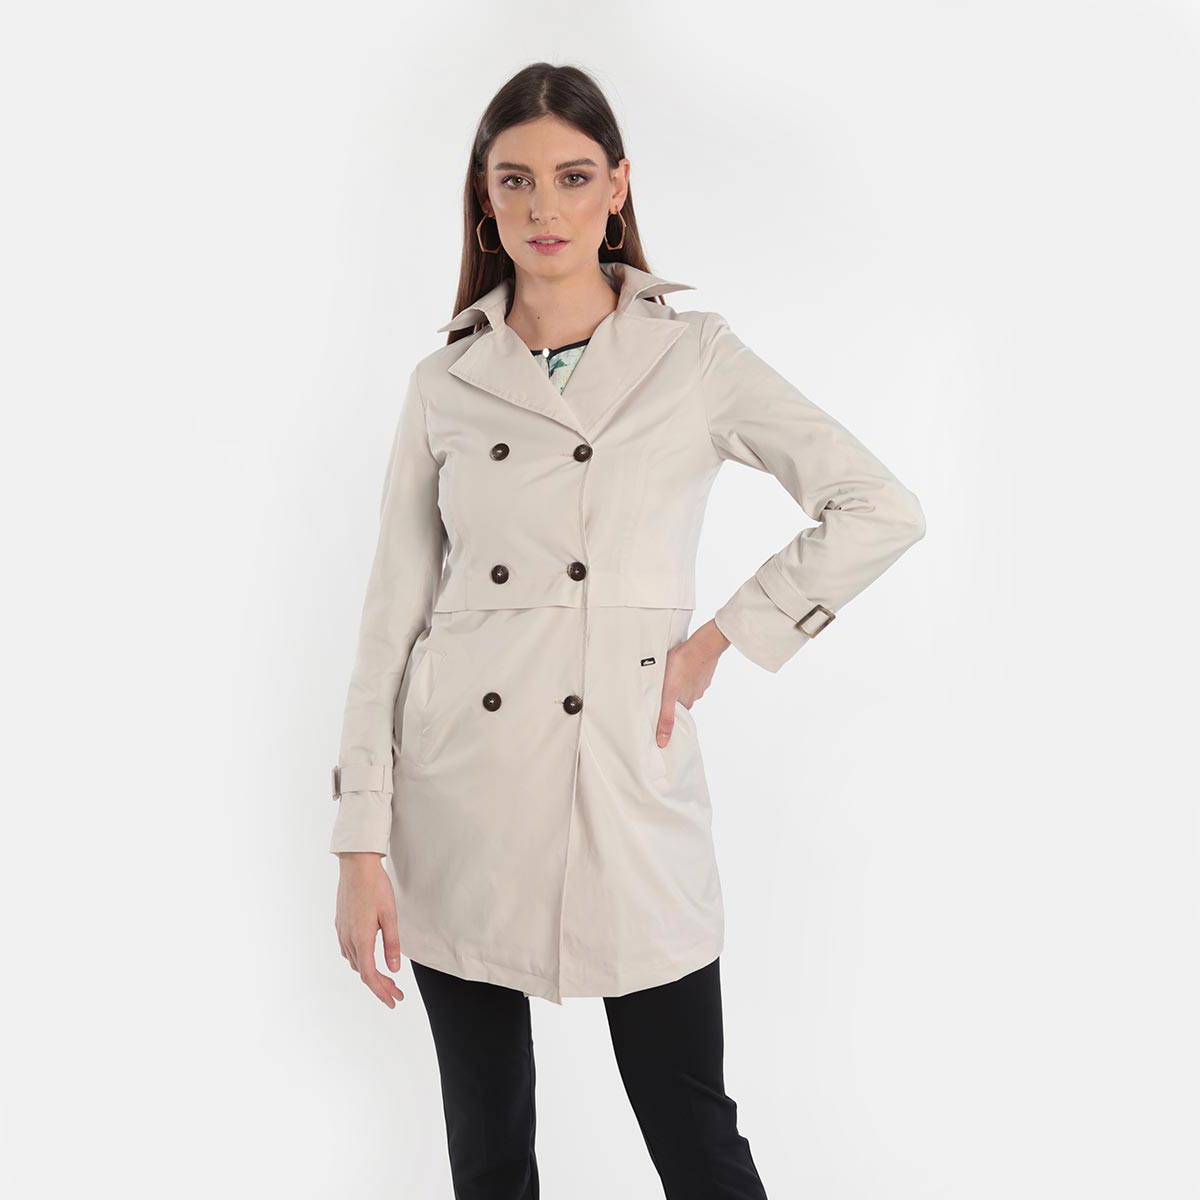 Trench donna curvy primavera 2020 Meteore Fashion